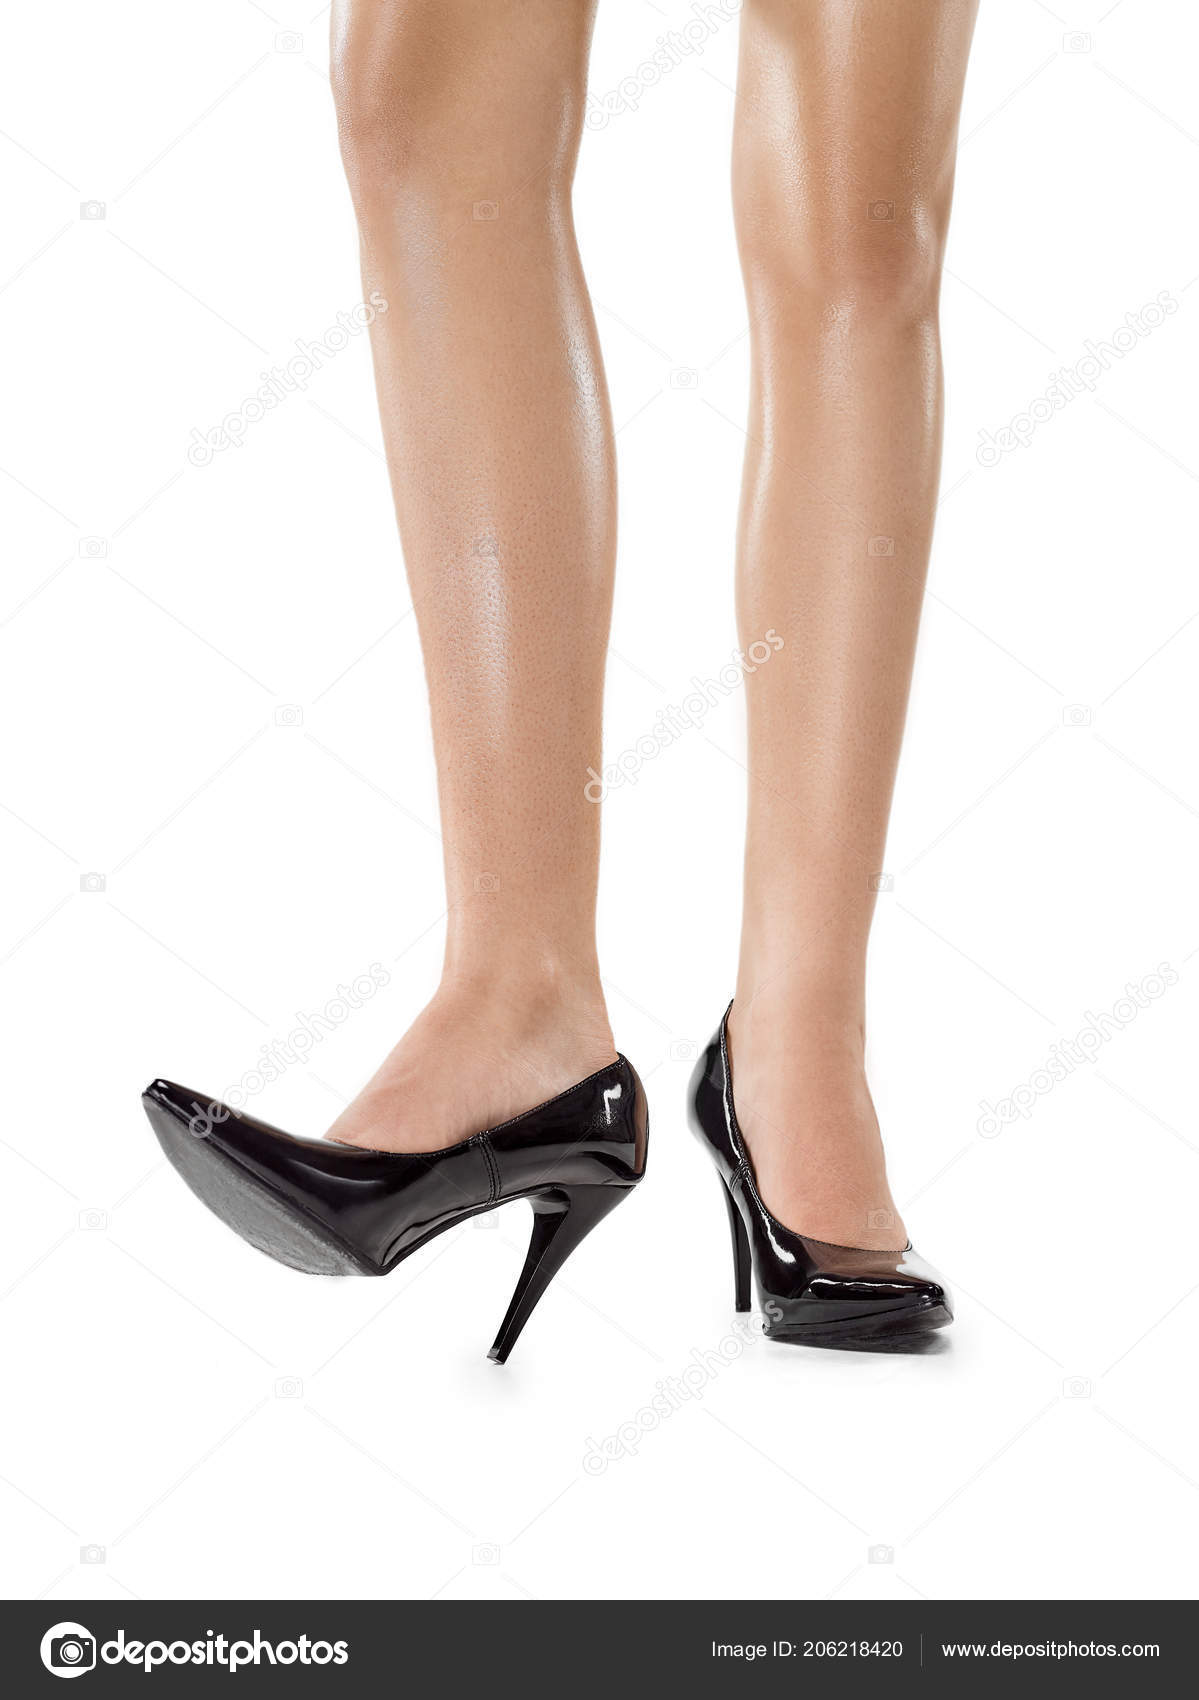 4d68d25b4c349d Tanned female legs in high heels isolated on white background jpg 1199x1700 Tanned  heels